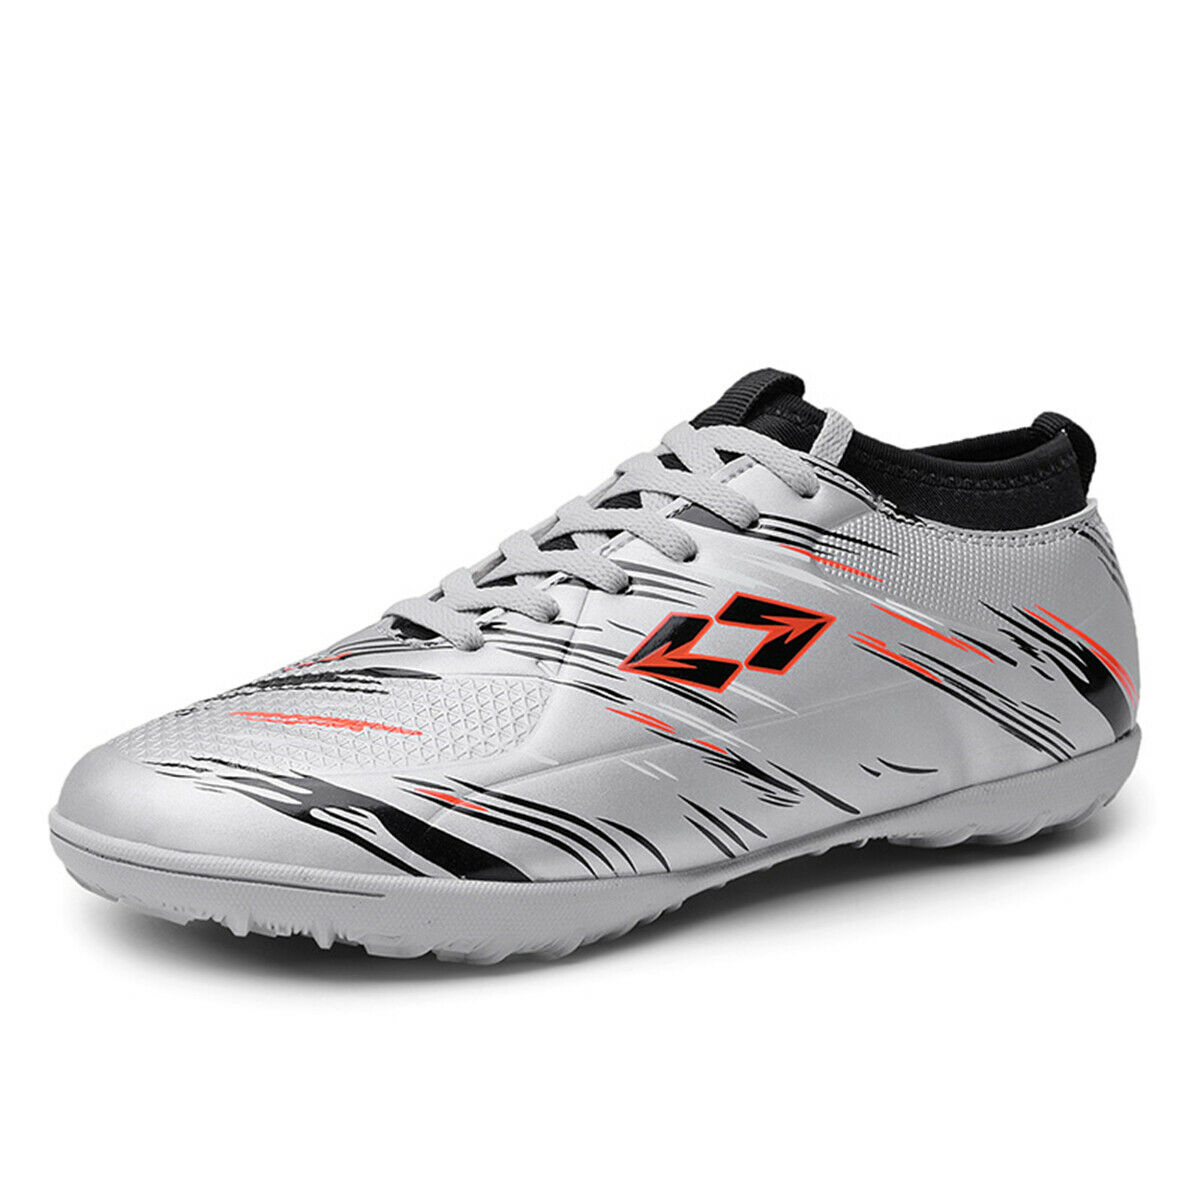 2019 New Fashion Athletic Mens Low Top Non-slip Soccer Football shoes Sports Hot